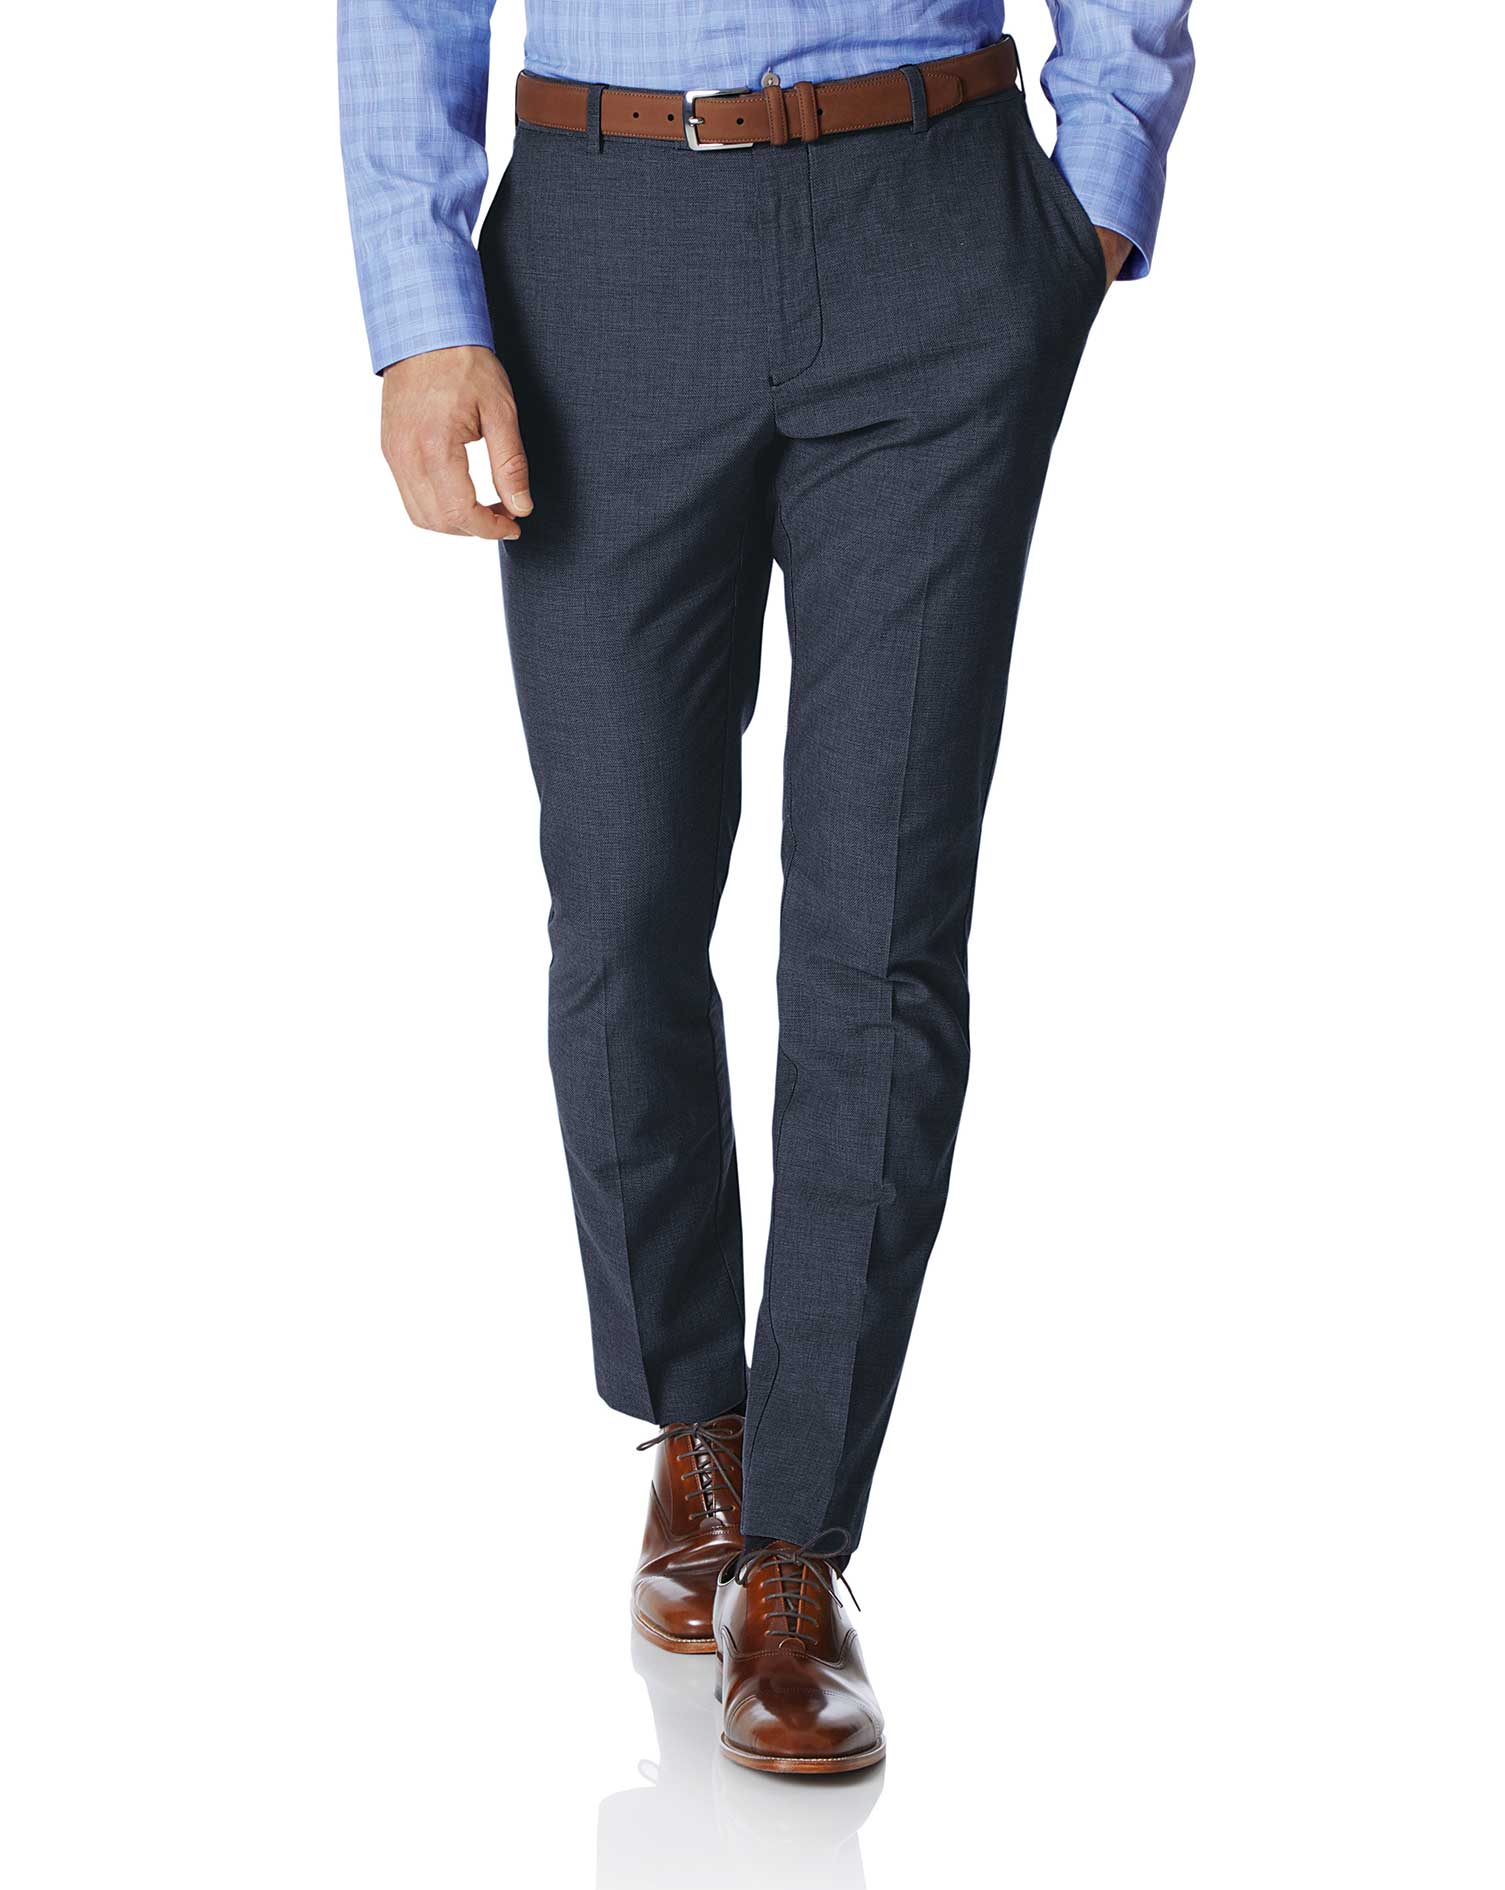 Navy Extra Slim Fit Stretch Non-Iron Trousers Size W36 L32 by Charles Tyrwhitt